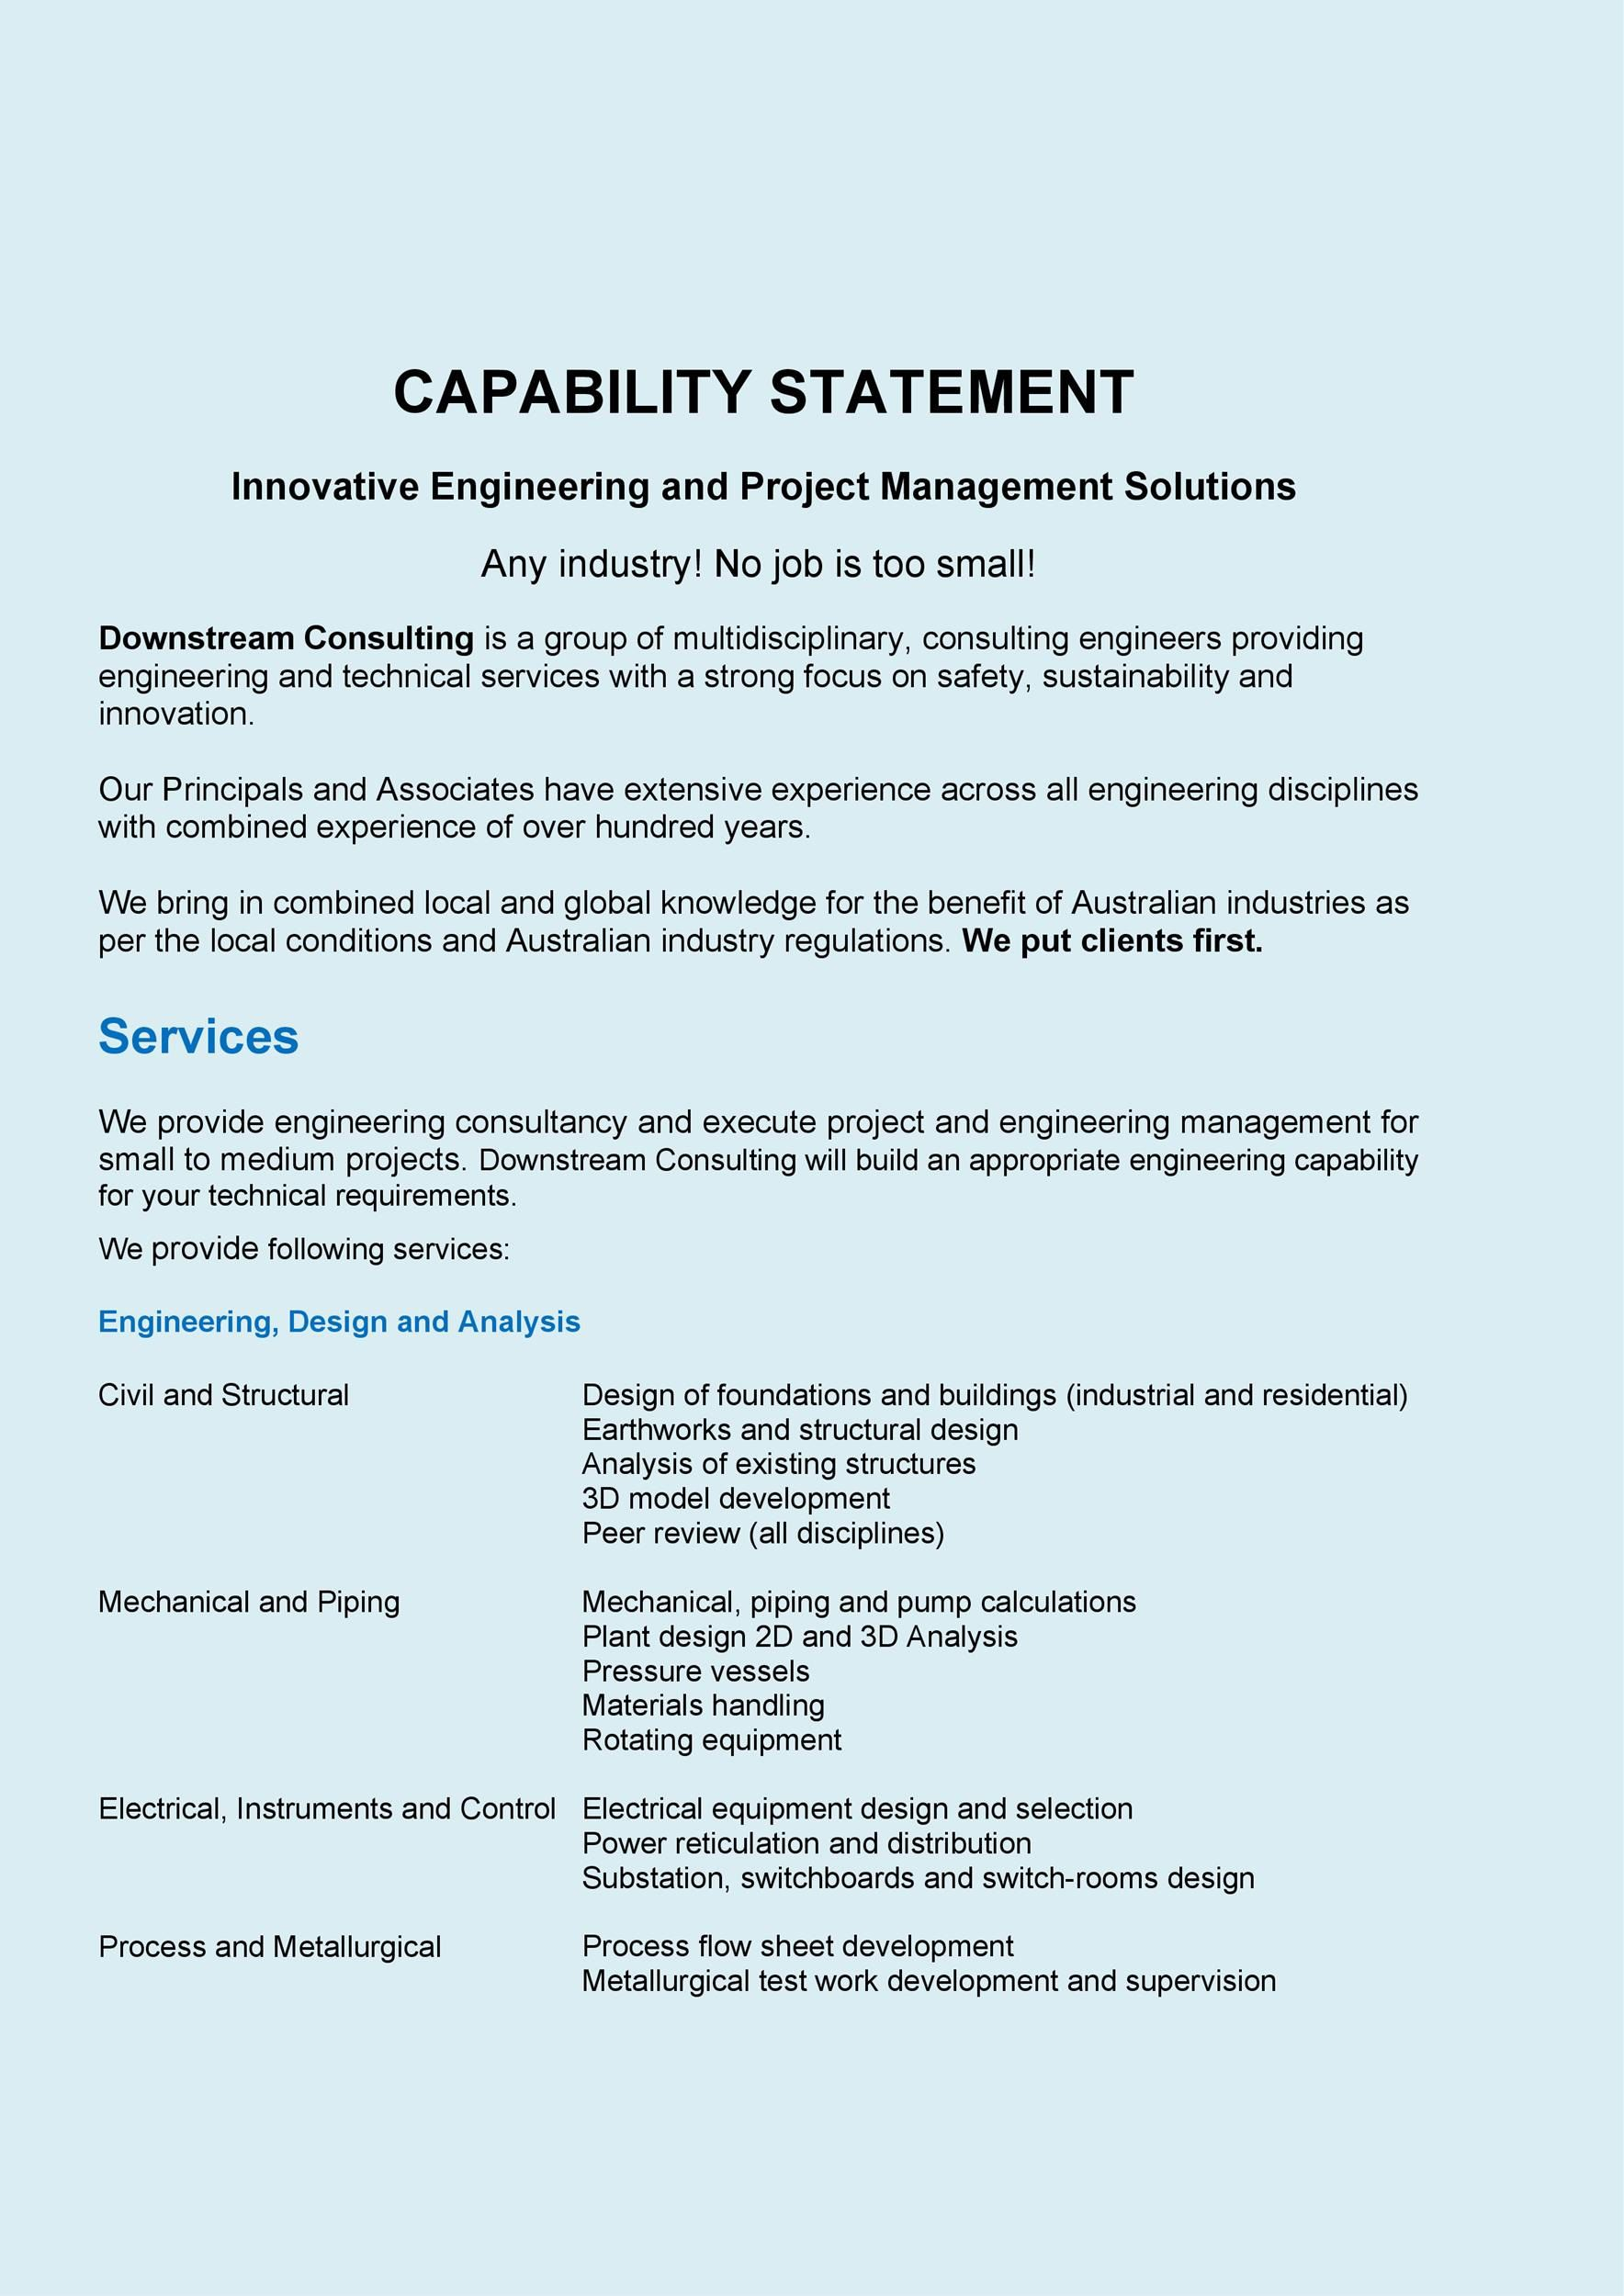 005 Rare Capability Statement Template Free Highest Quality  Word Editable DesignFull